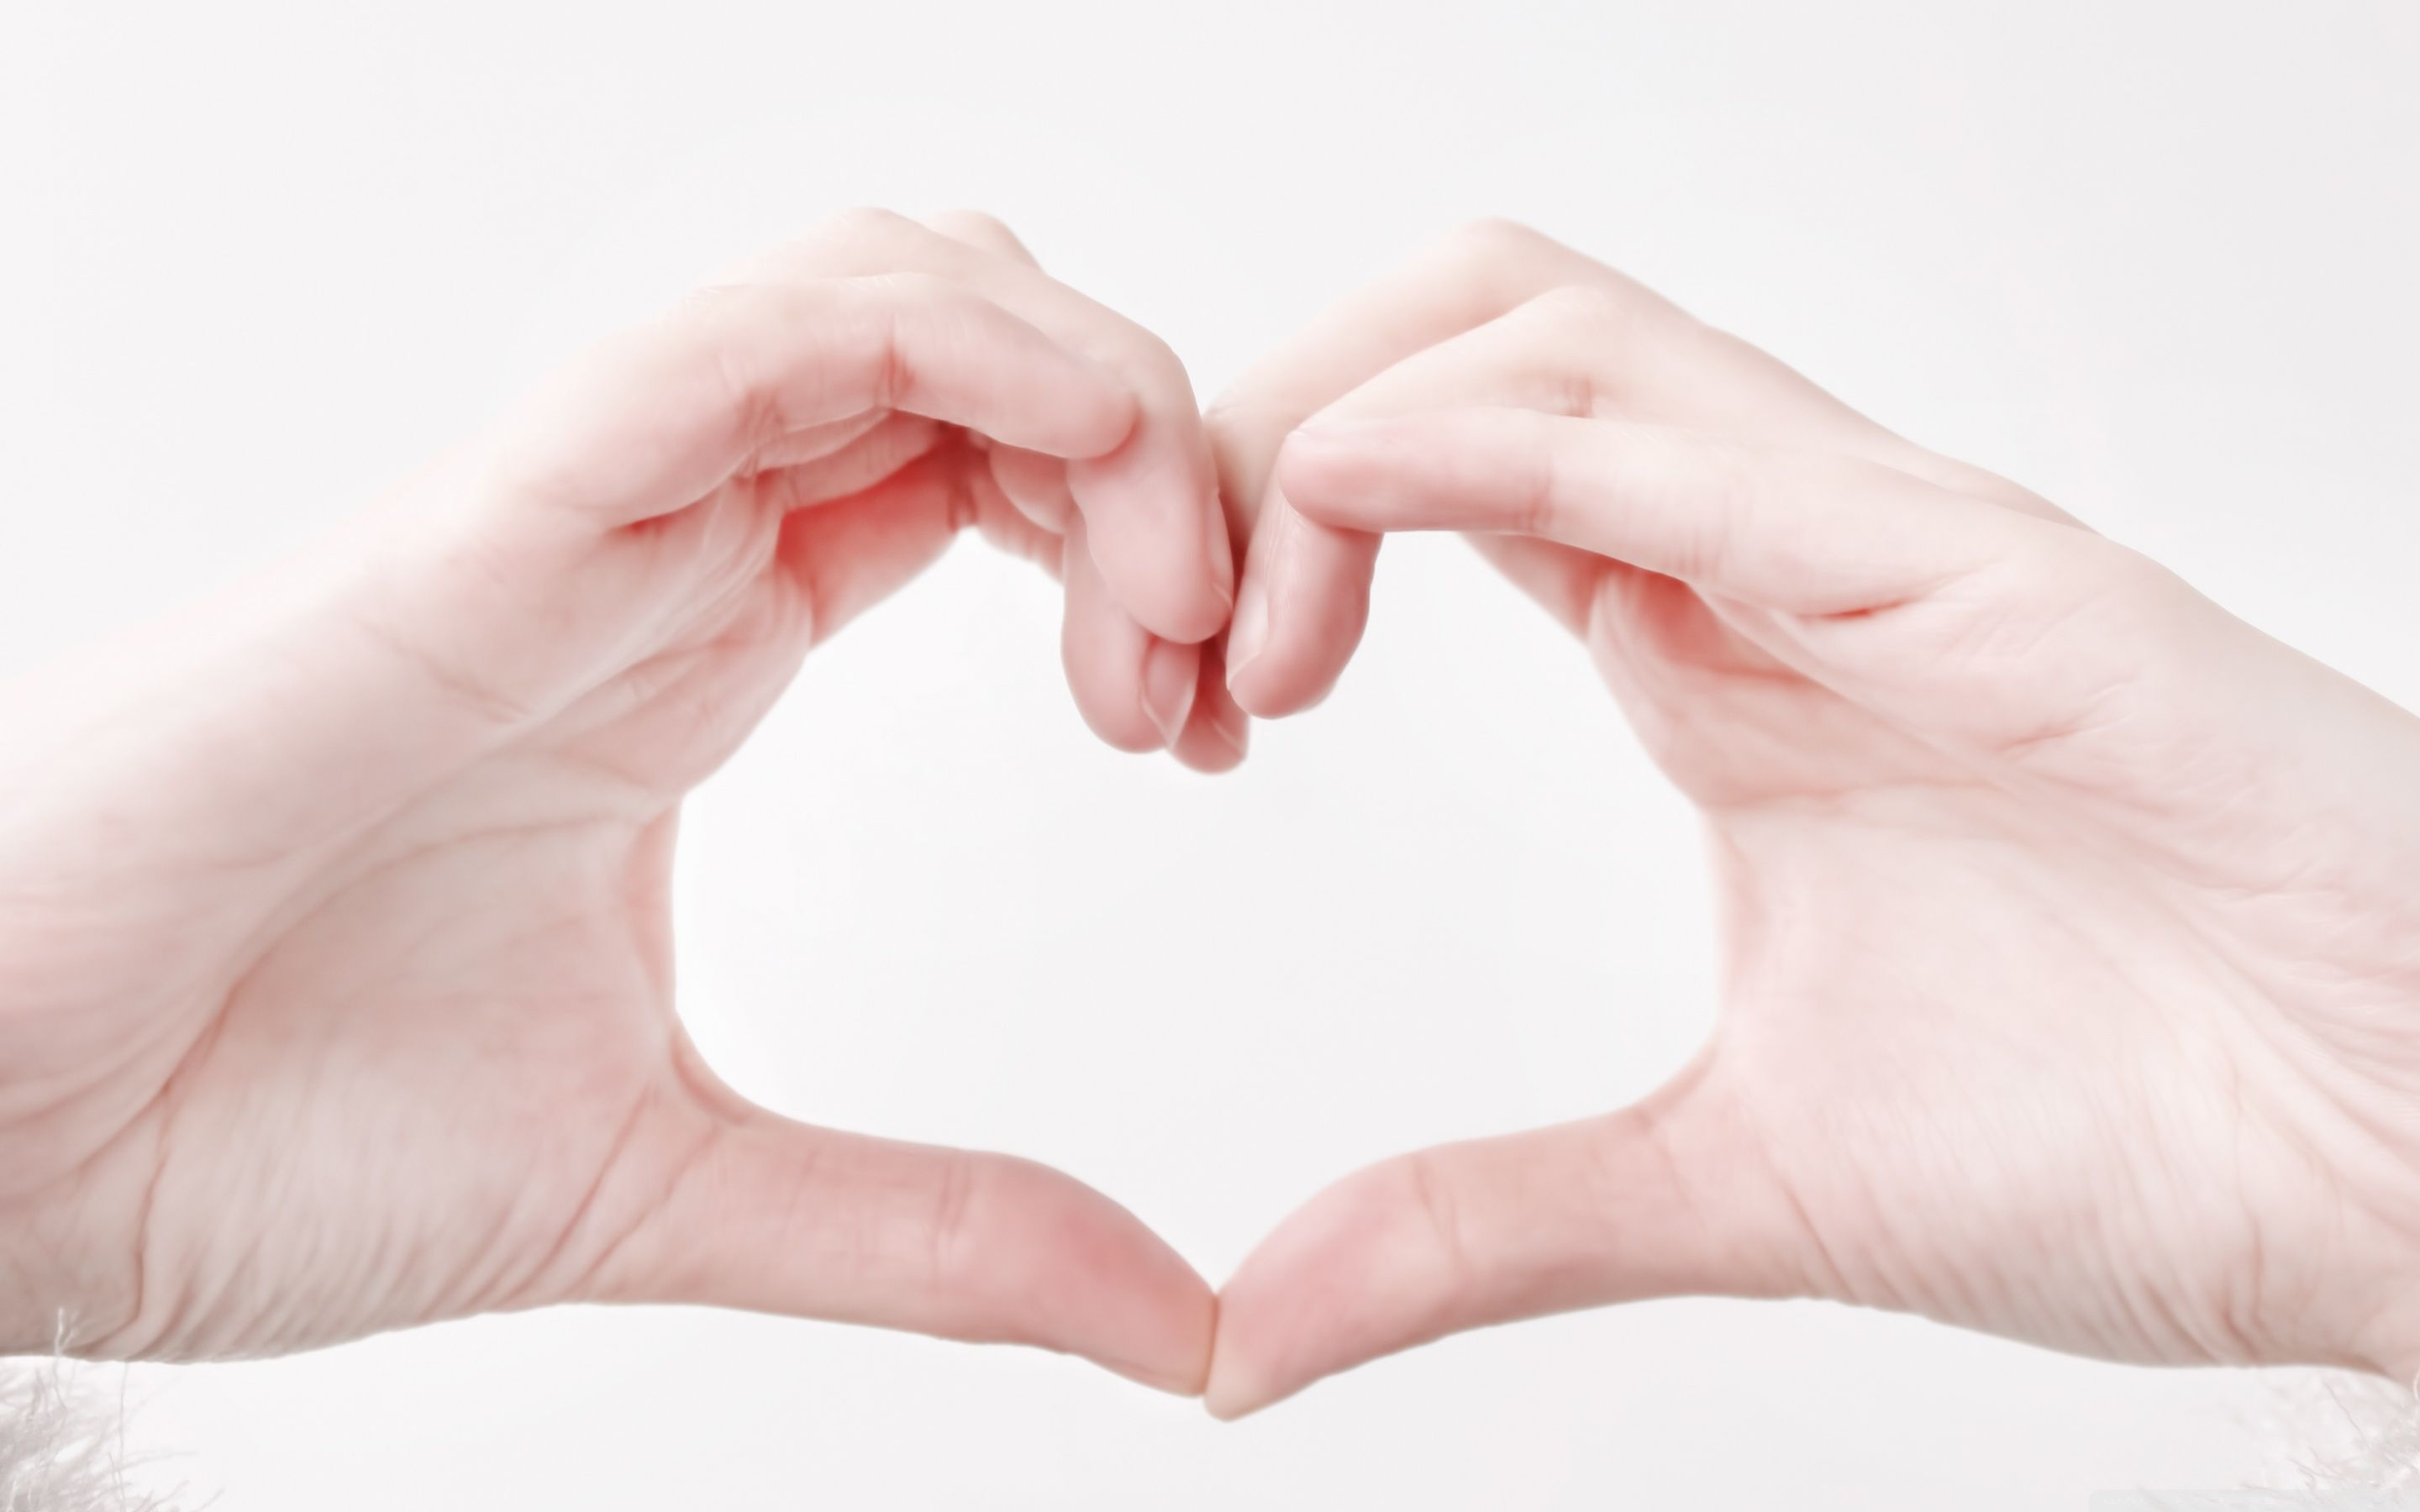 Finger Heart Wallpapers - Top Free Finger Heart ...